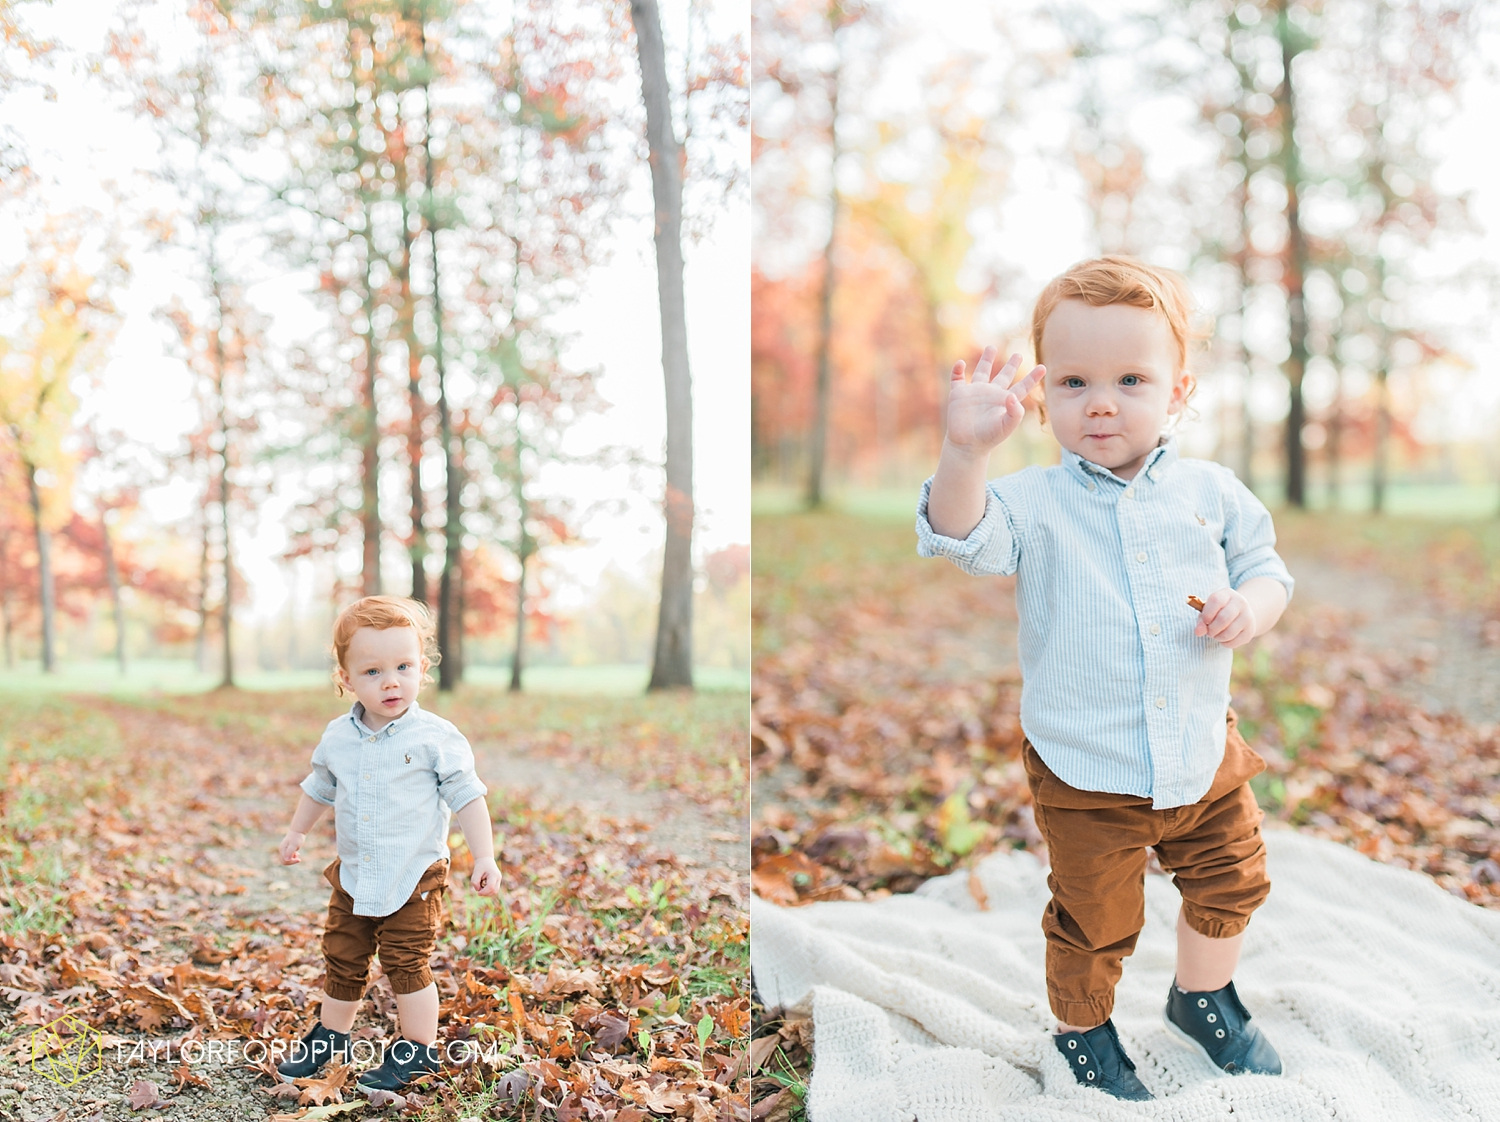 huntertown_indiana_family_photographer_taylor_ford_3617.jpg